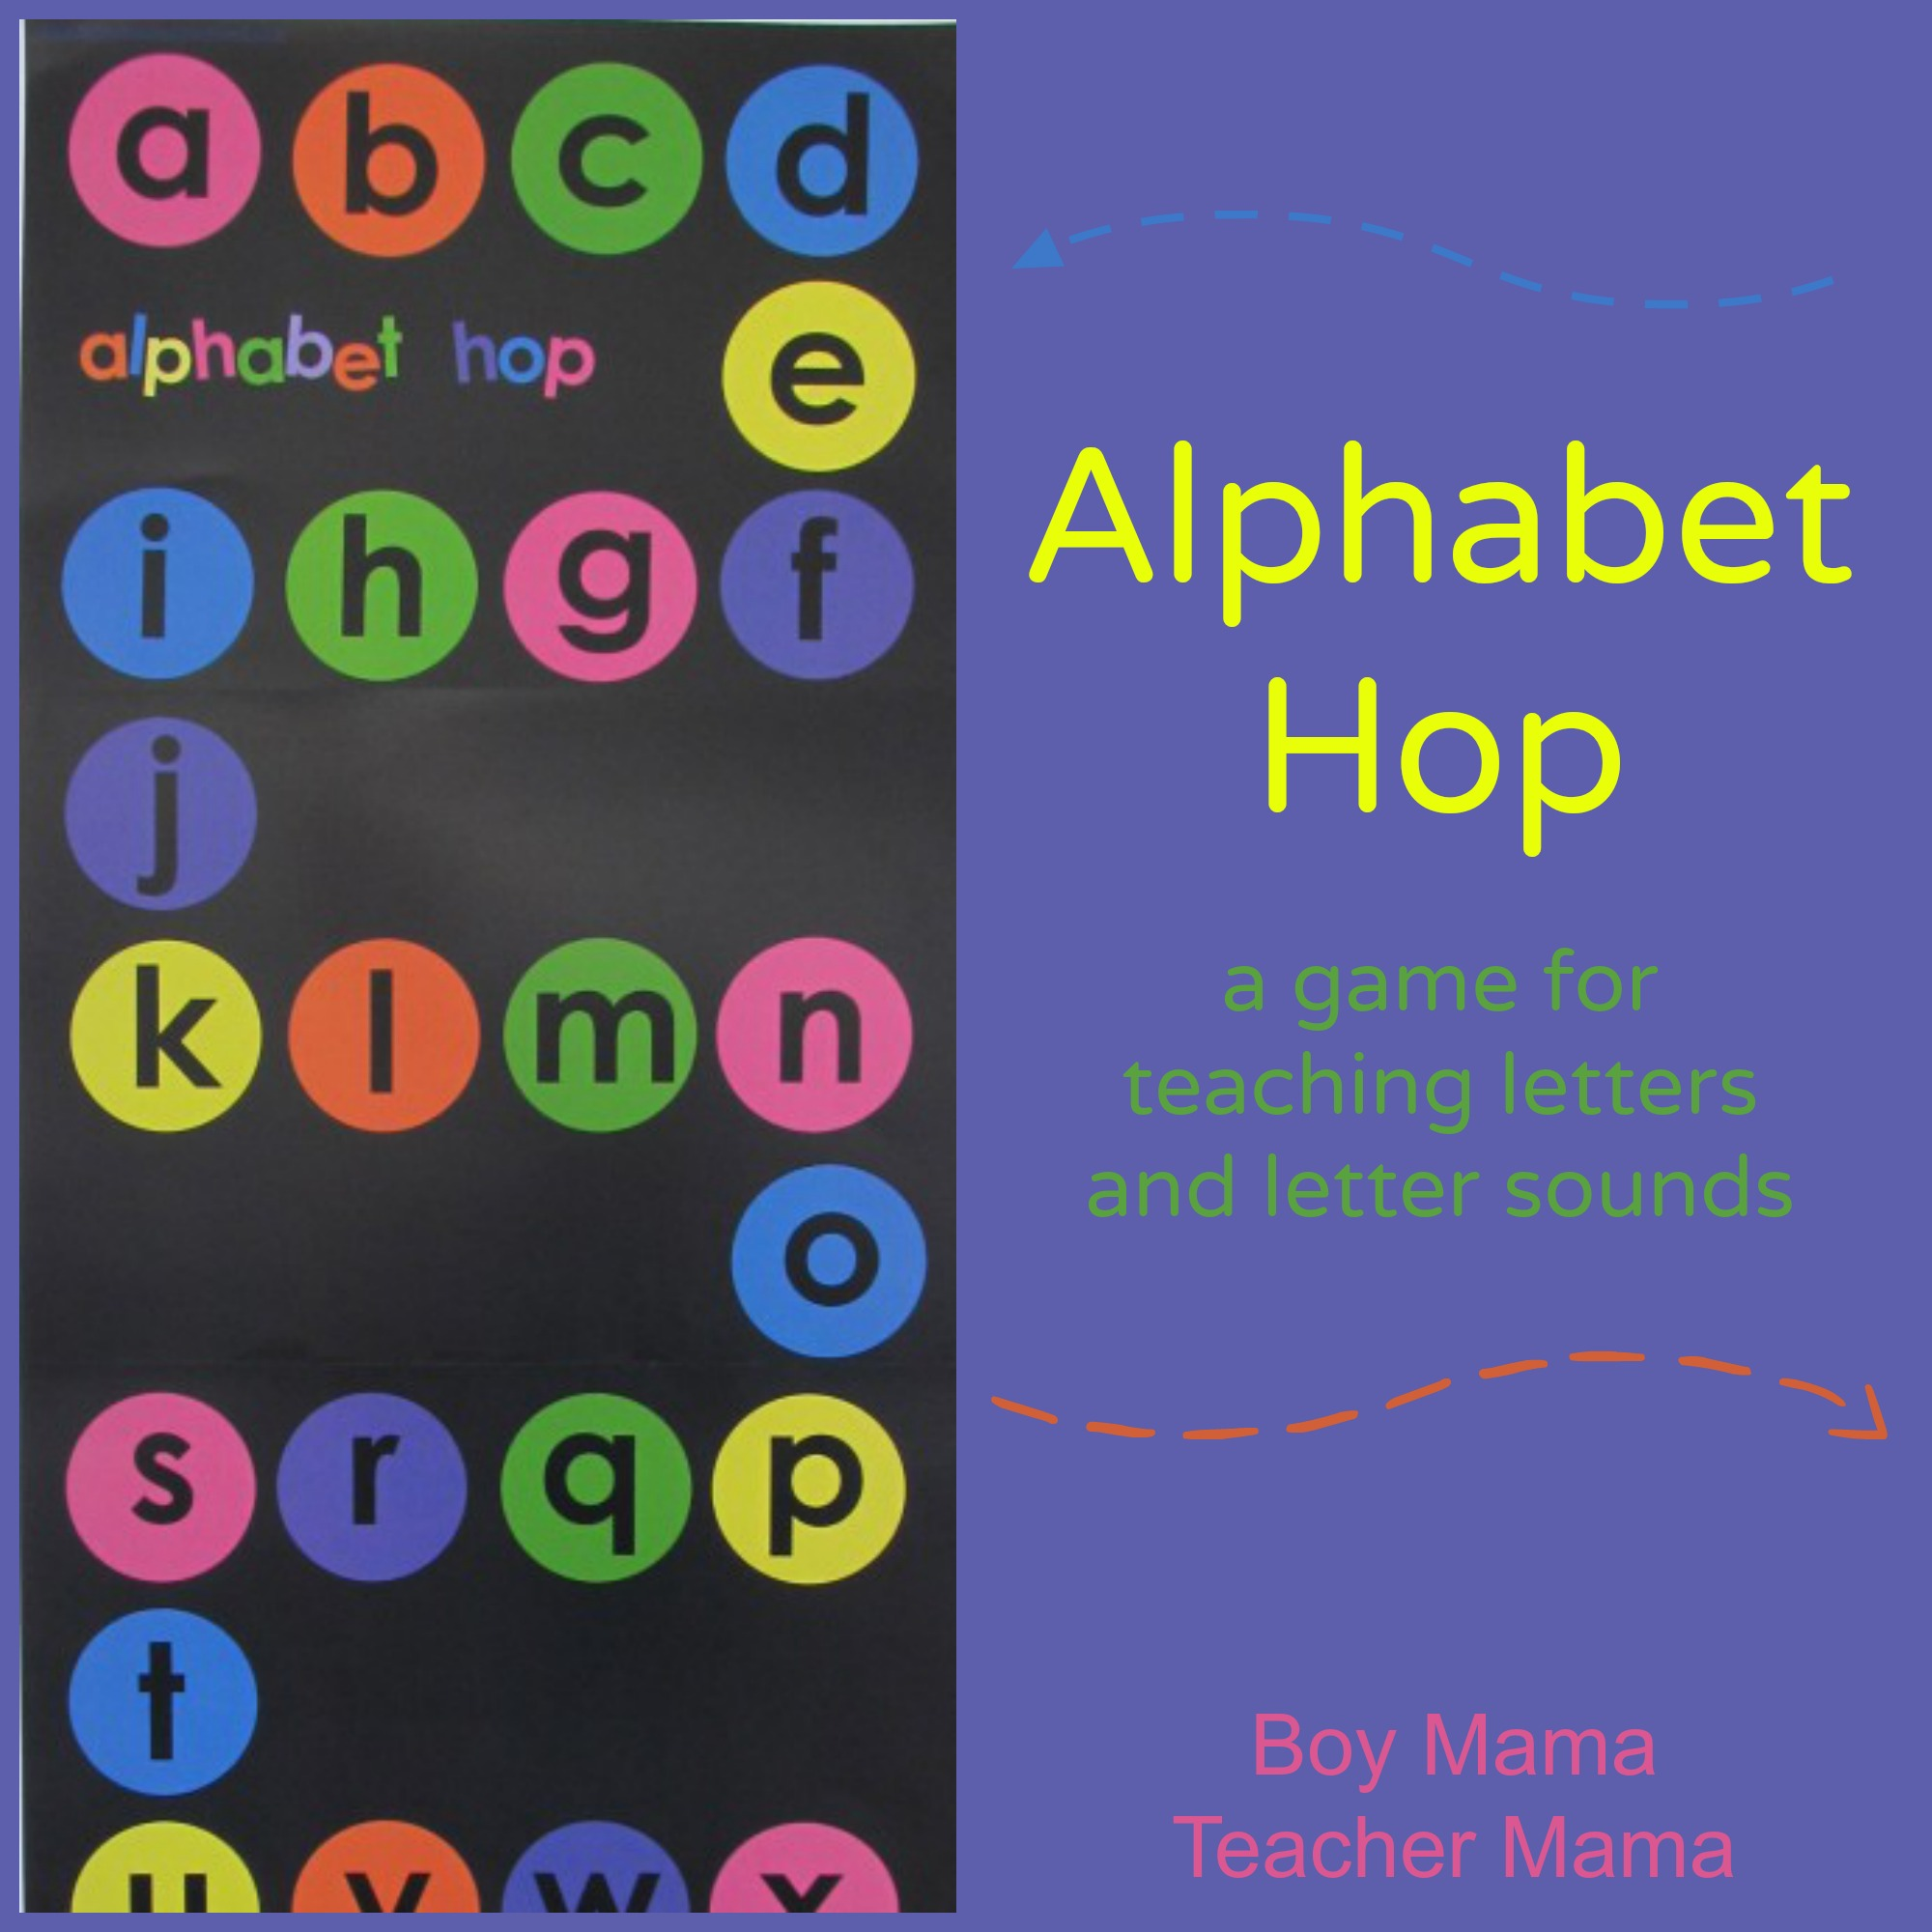 Boy Mama Teacher Mama  Alphabet Hop